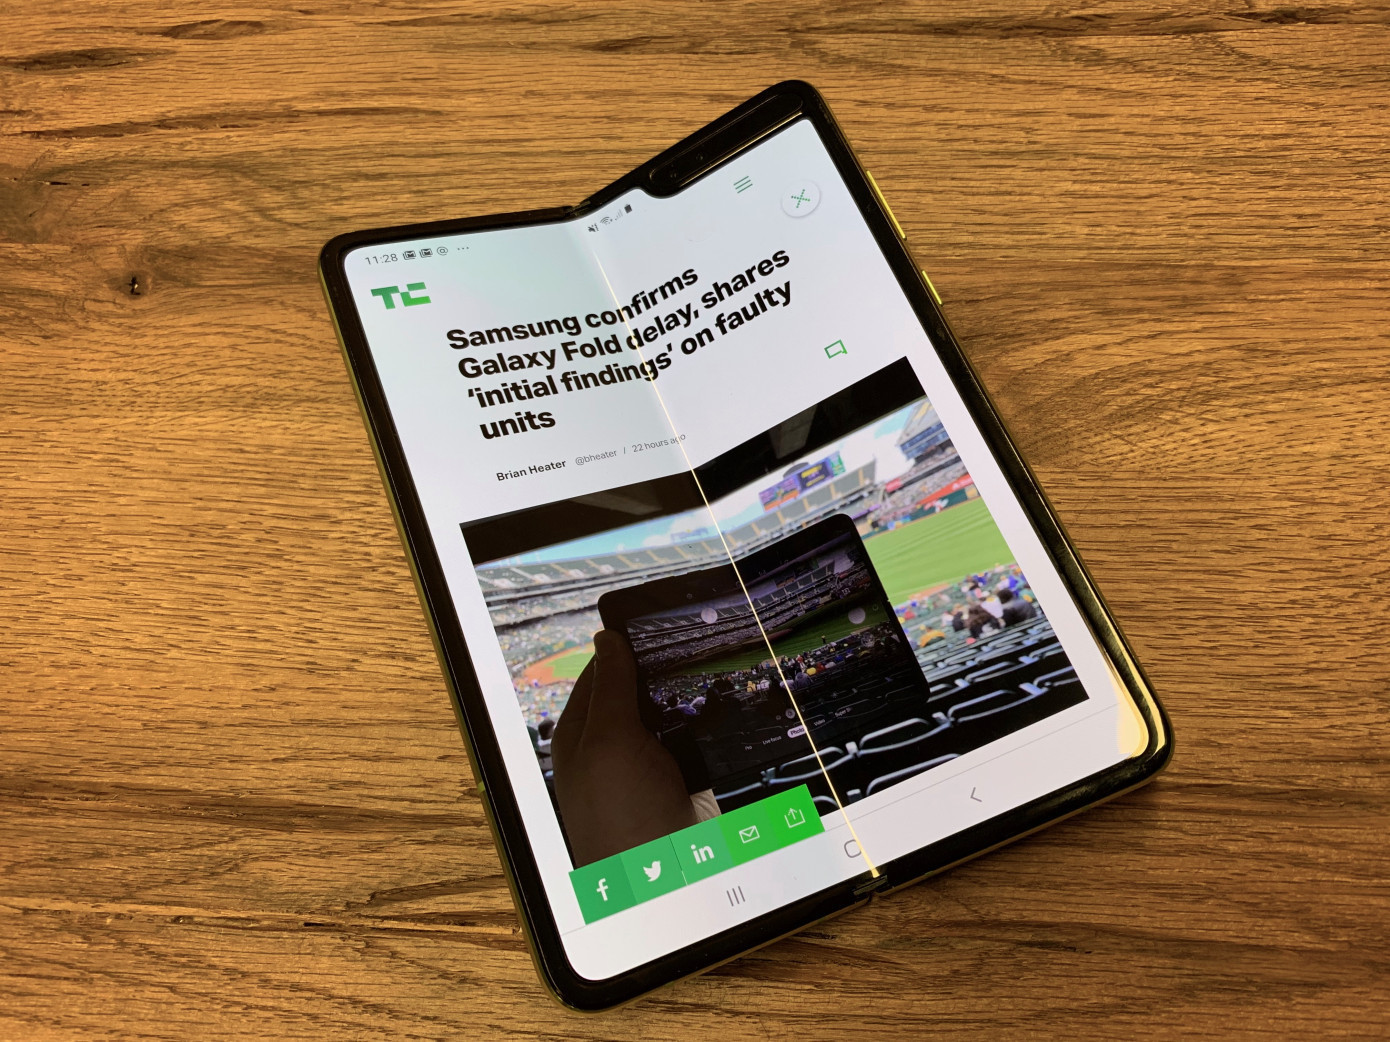 Att Has Cancelled Early Orders For The Samsung Galaxy Fold